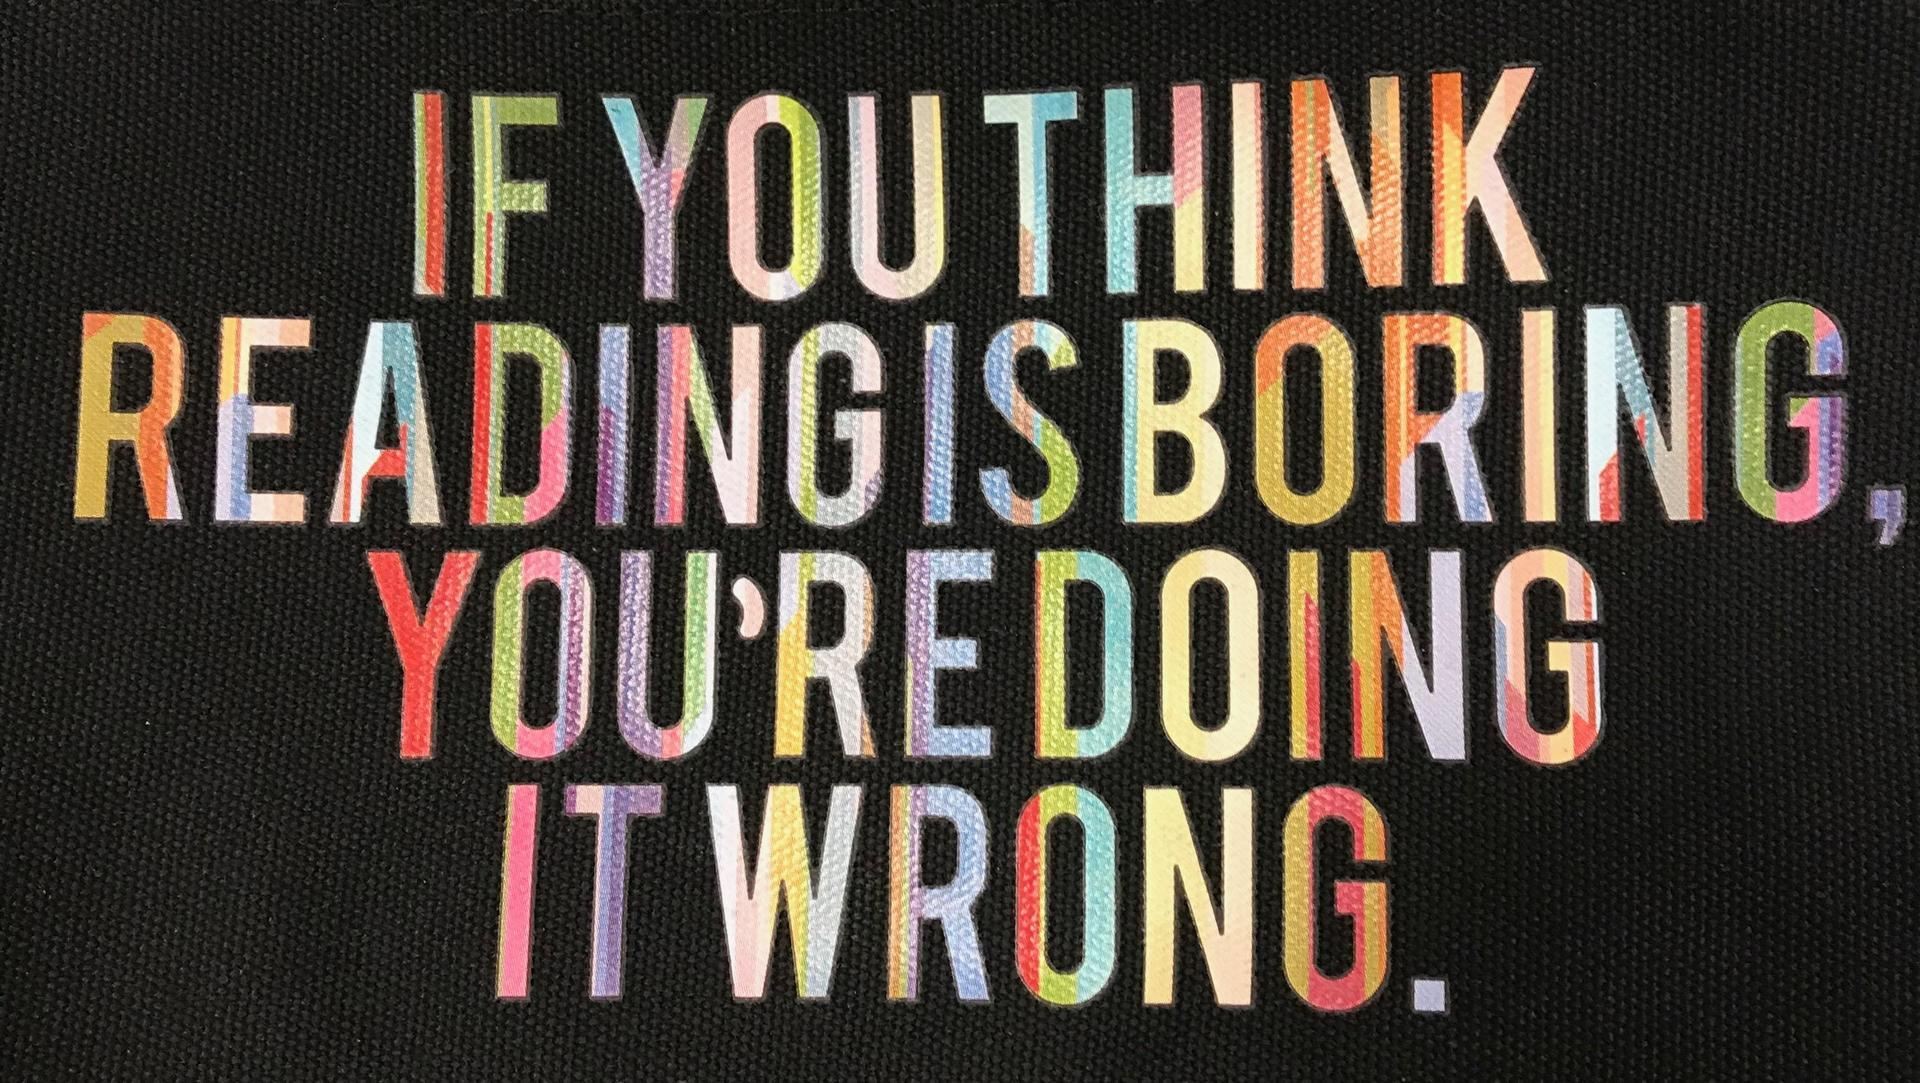 If you think reading is boring, you're doing it wrong